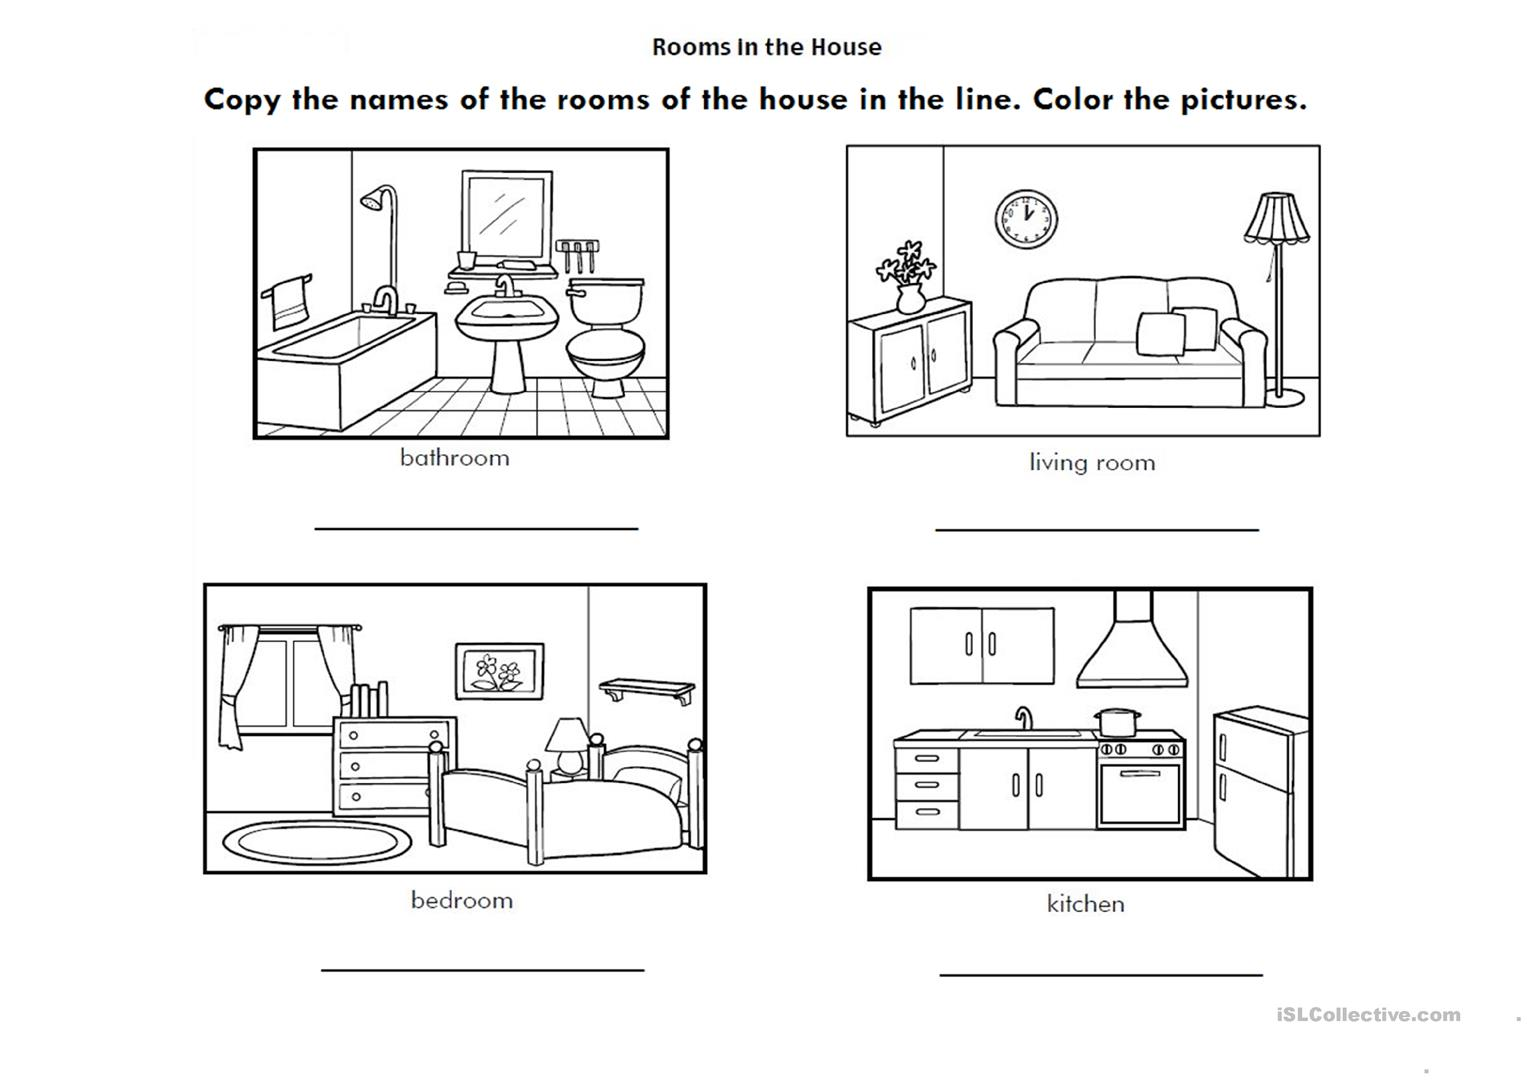 Rooms In The House Worksheets For Preschool 796194